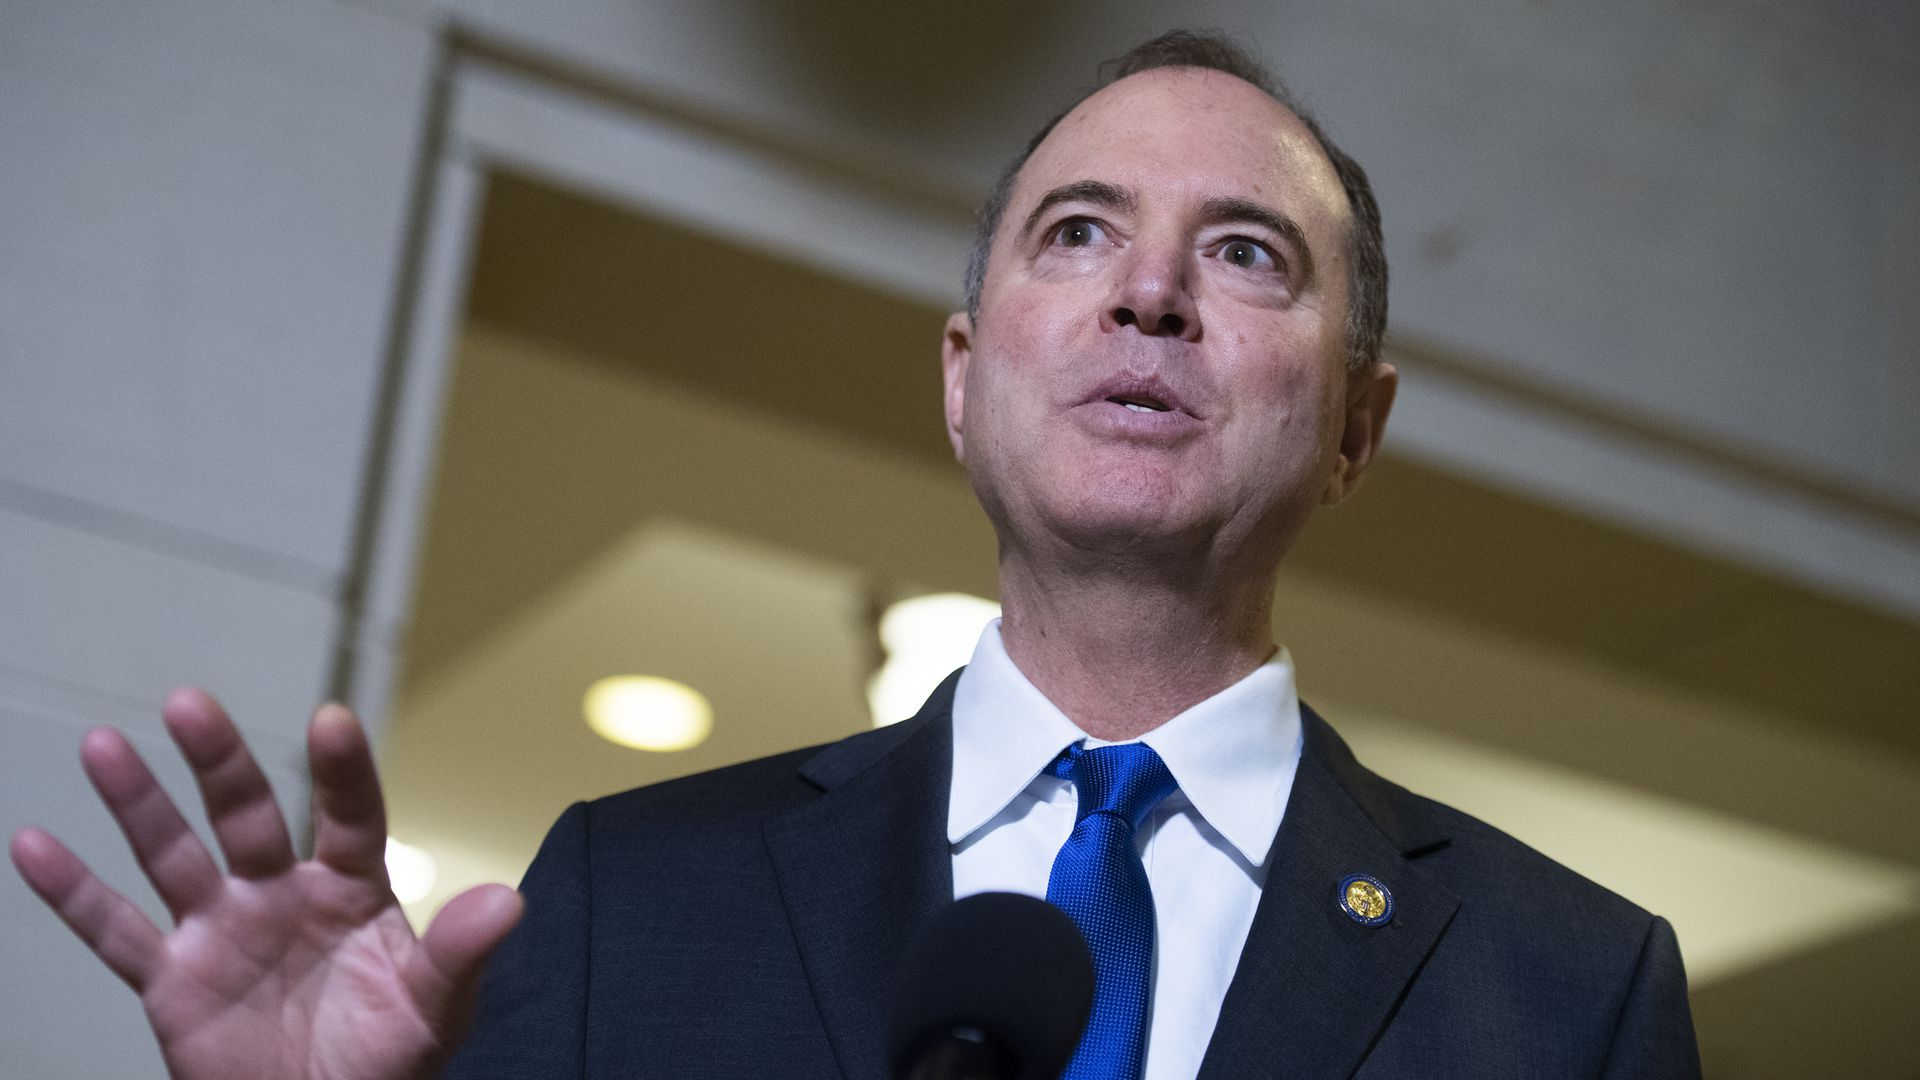 House Intelligence Committee Chairman Adam Schiff, D-Calif., speaks to the media on Monday, November 4